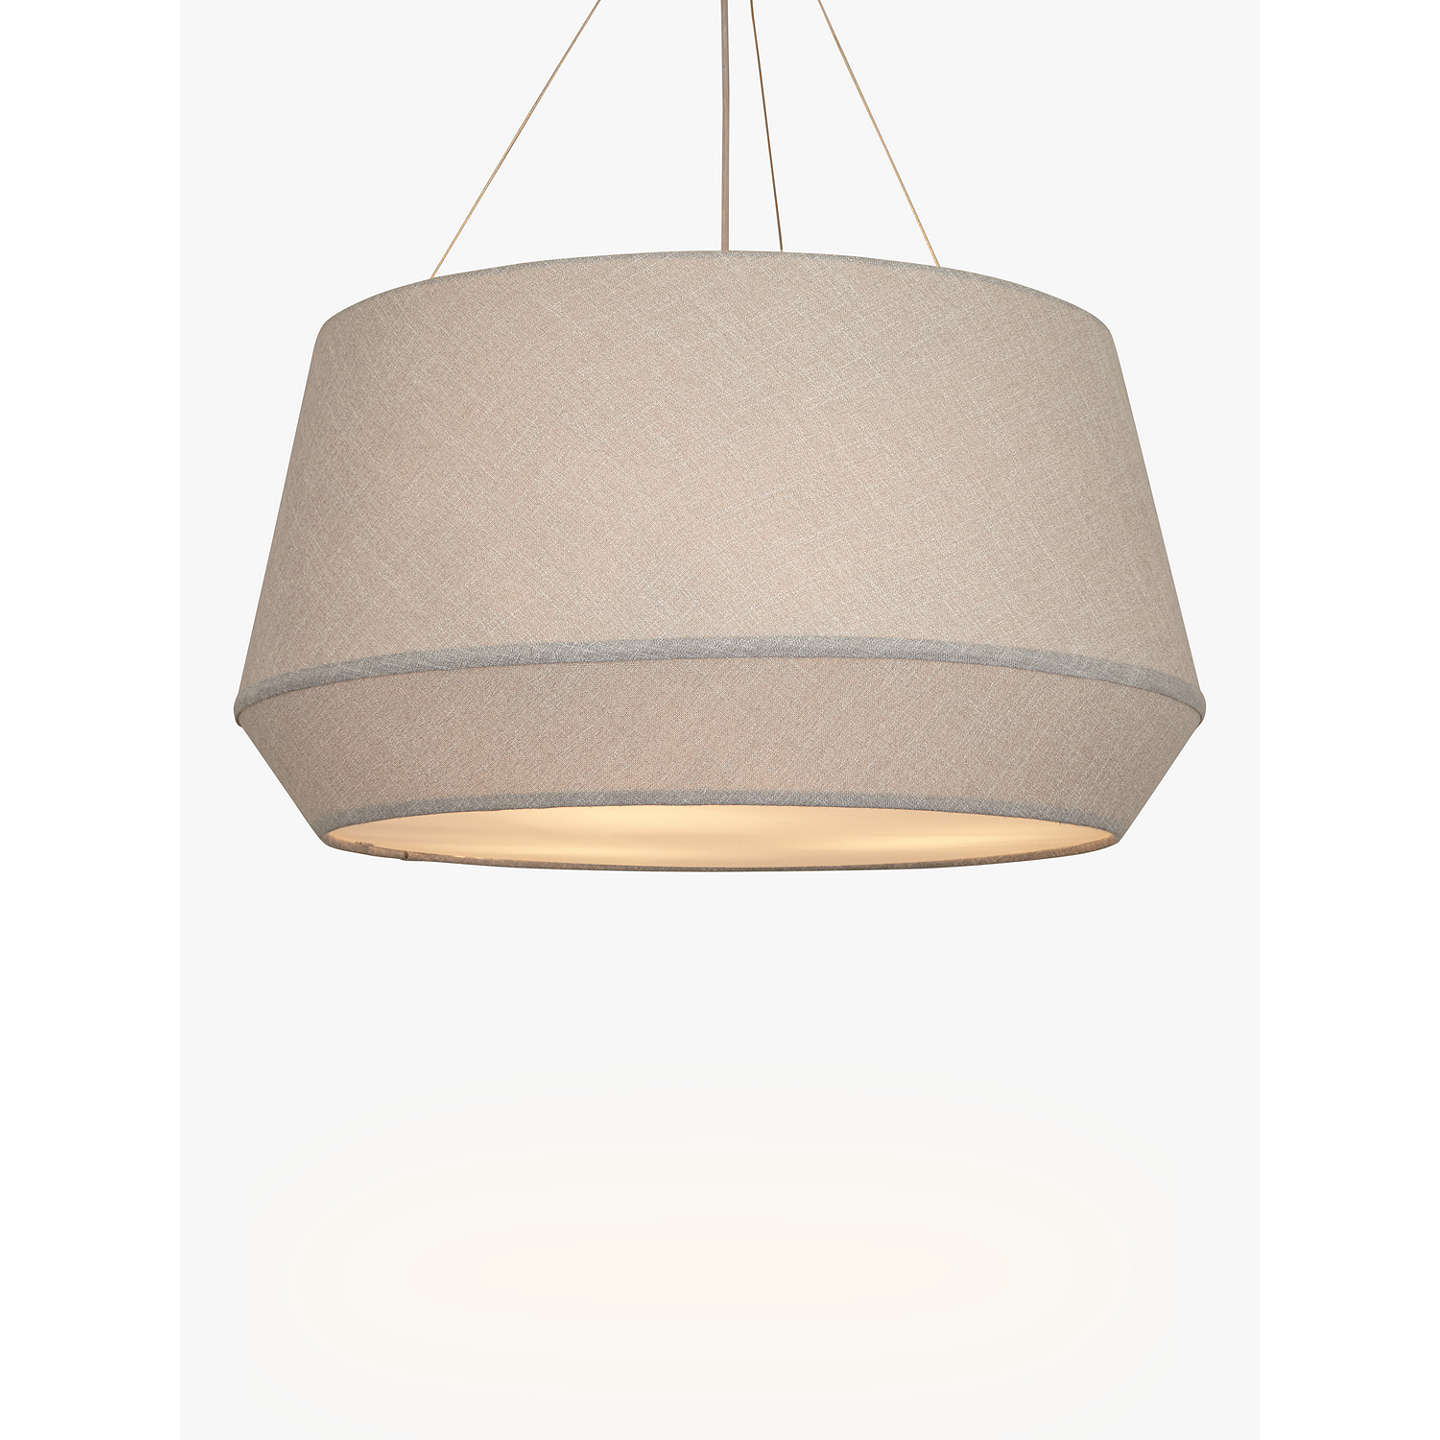 John lewis astrid fabric pendant grey at john lewis buyjohn lewis astrid fabric pendant grey online at johnlewis mozeypictures Image collections